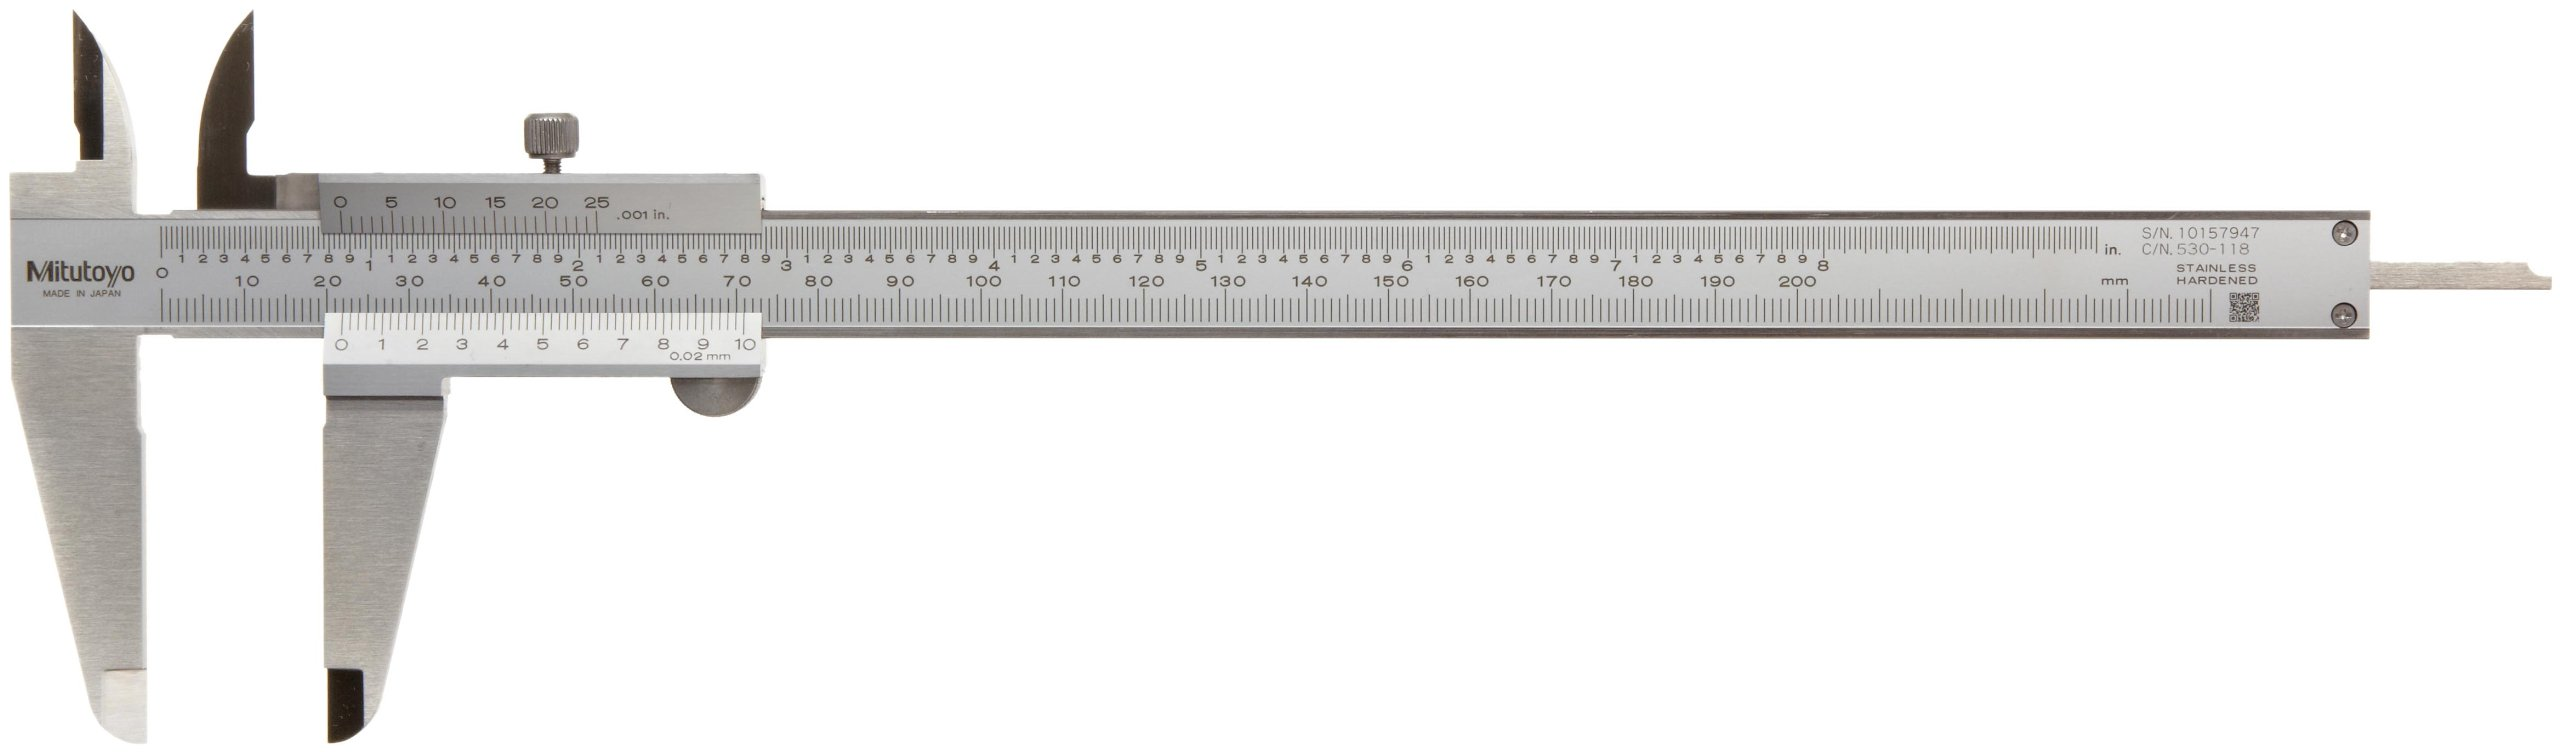 Mitutoyo 530-118 Vernier Calipers, Stainless Steel, for Inside, Outside, Depth and Step Measurements, Metric, 0''/0mm-200mm Range, +/-0.03mm Accuracy, 0.02mm Resolution, 50mm Jaw Depth